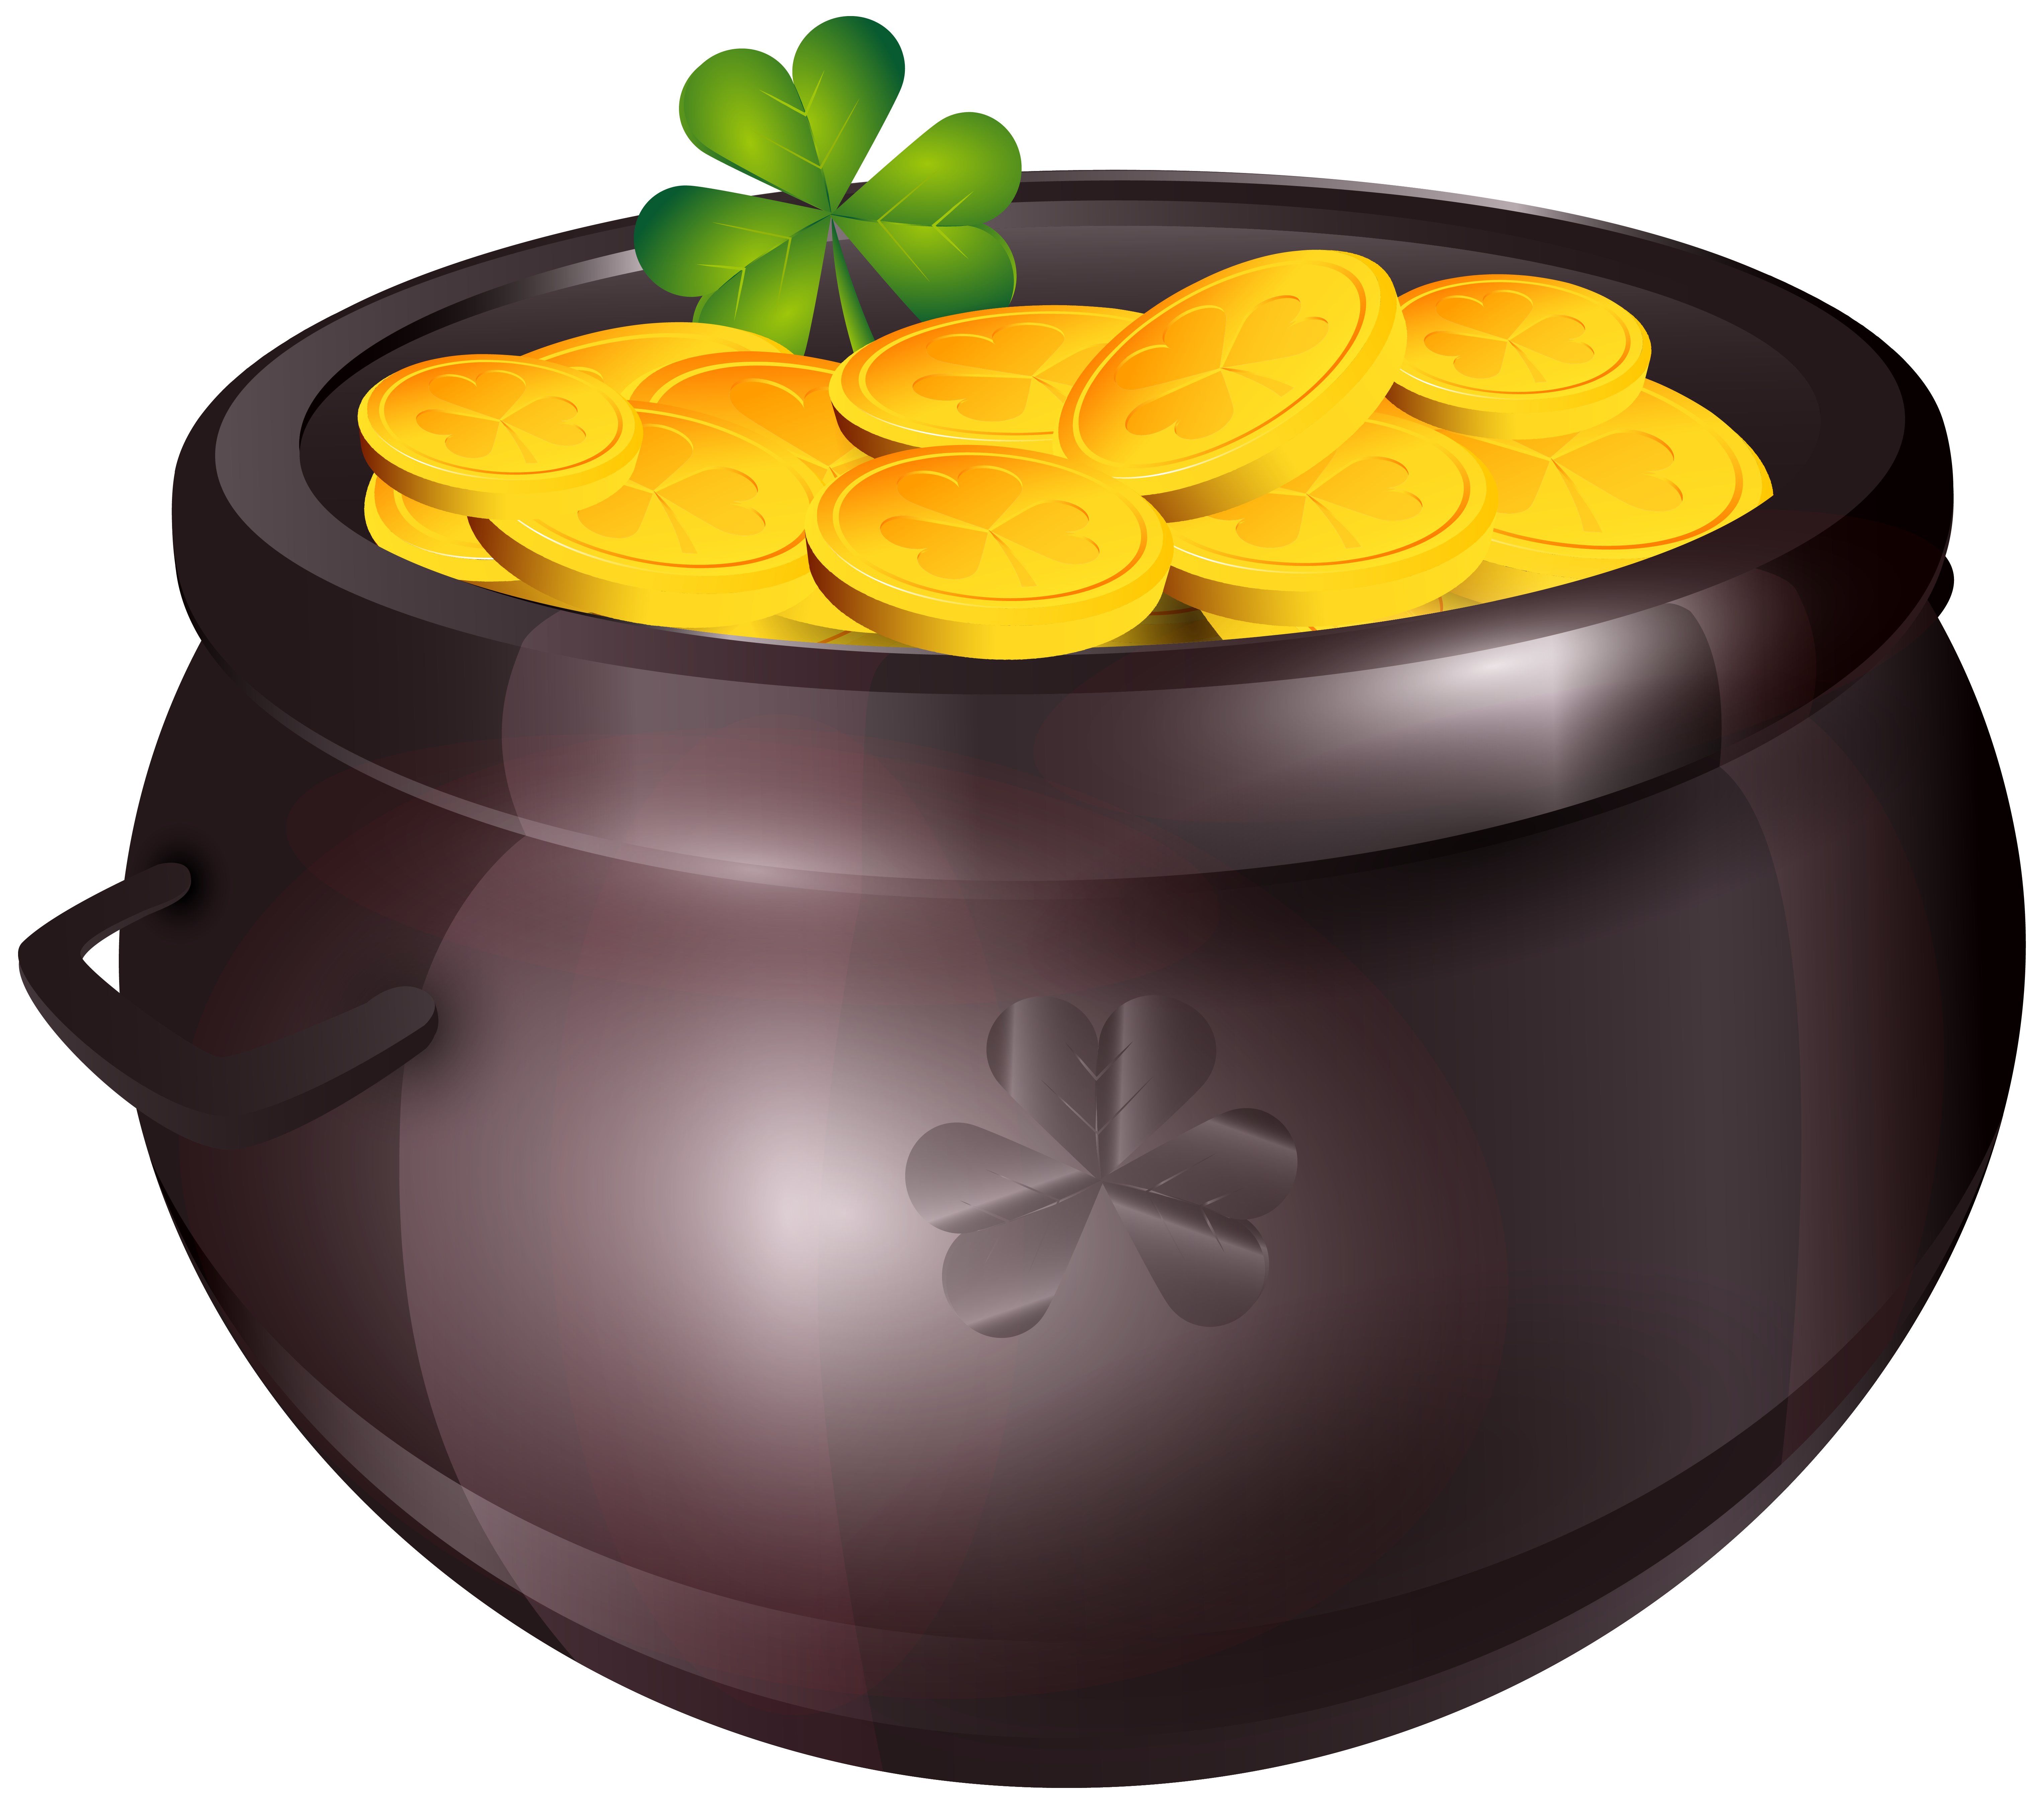 Pot of gold png. Clipart image gallery yopriceville